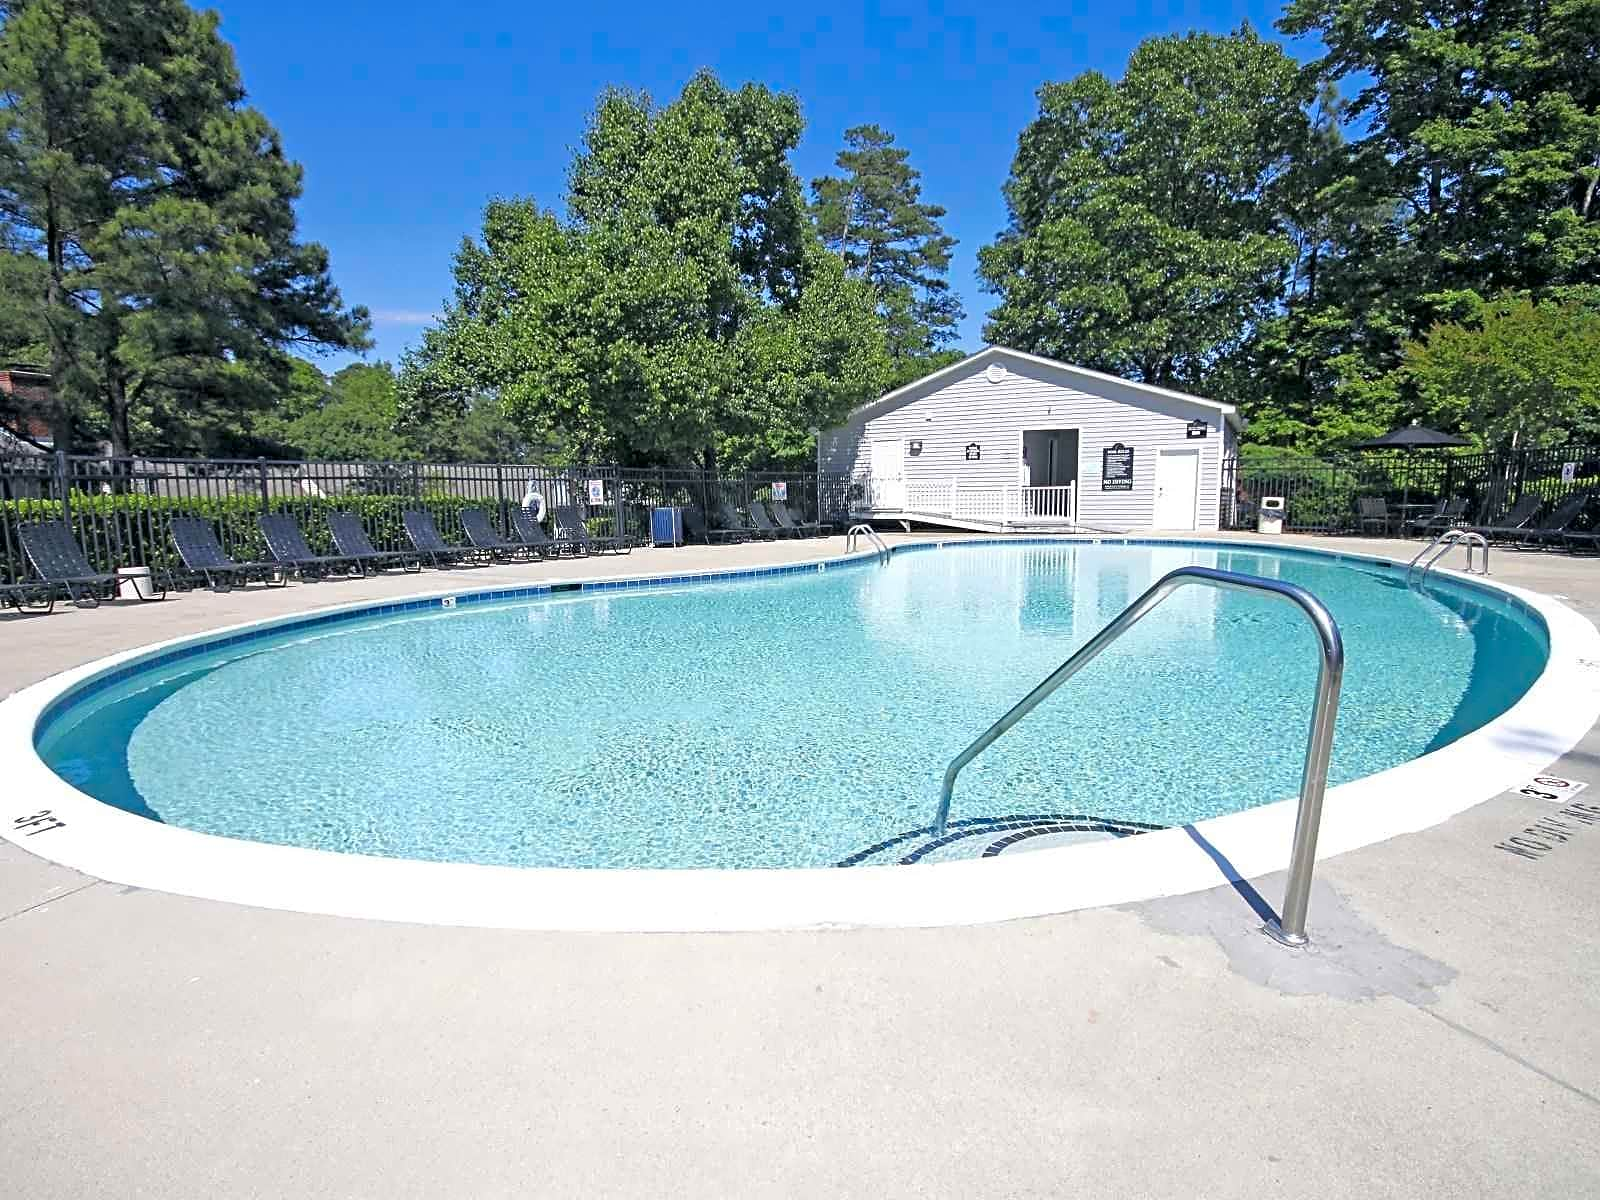 Photo: Raleigh Apartment for Rent - $600.00 / month; 1 Bd & 1 Ba